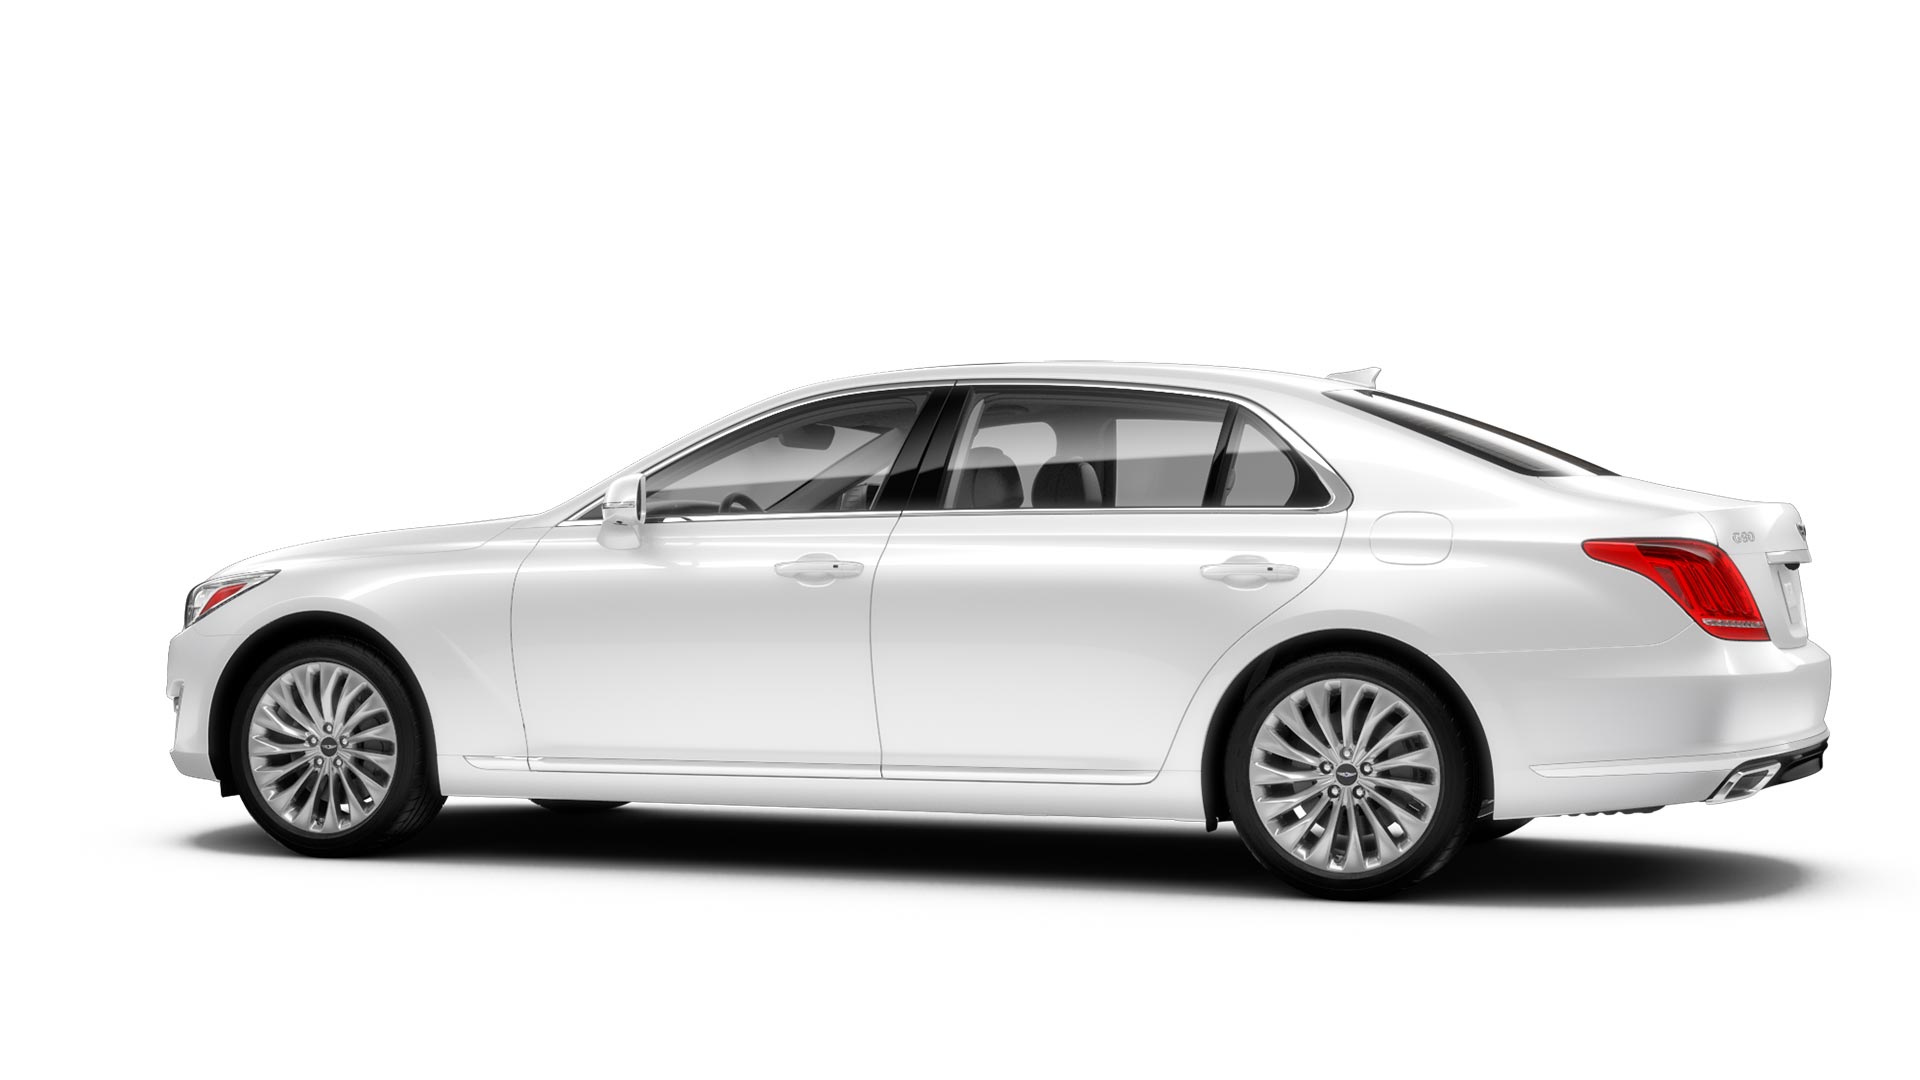 2018 genesis 3 3t. brilliant genesis above image may differ from the actual vehicle and be updated without  prior notice for some models is only provided for  for 2018 genesis 3 3t